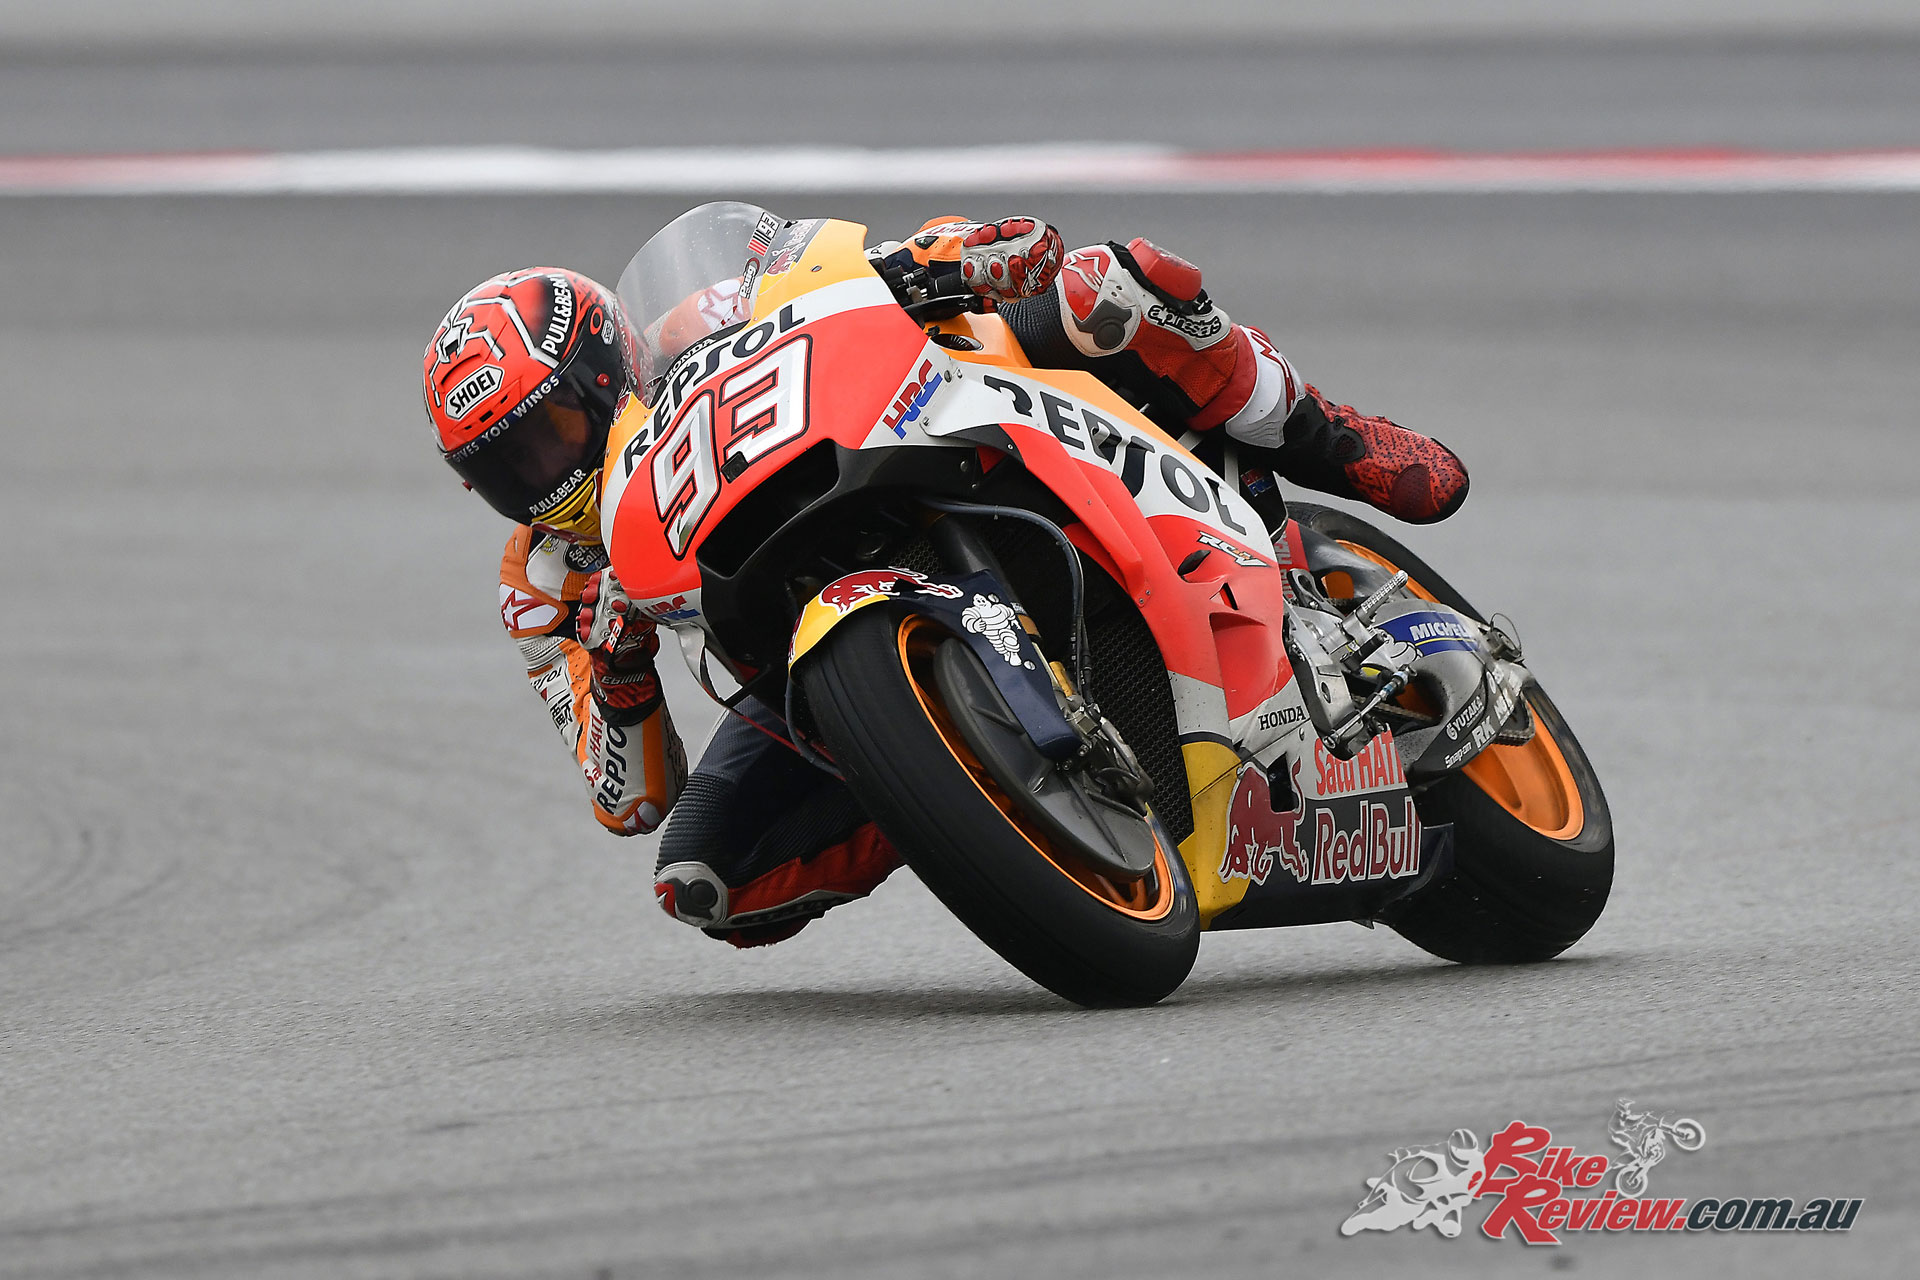 Marquez may be playing it safe with a reasonable lead in the championship tally at his back